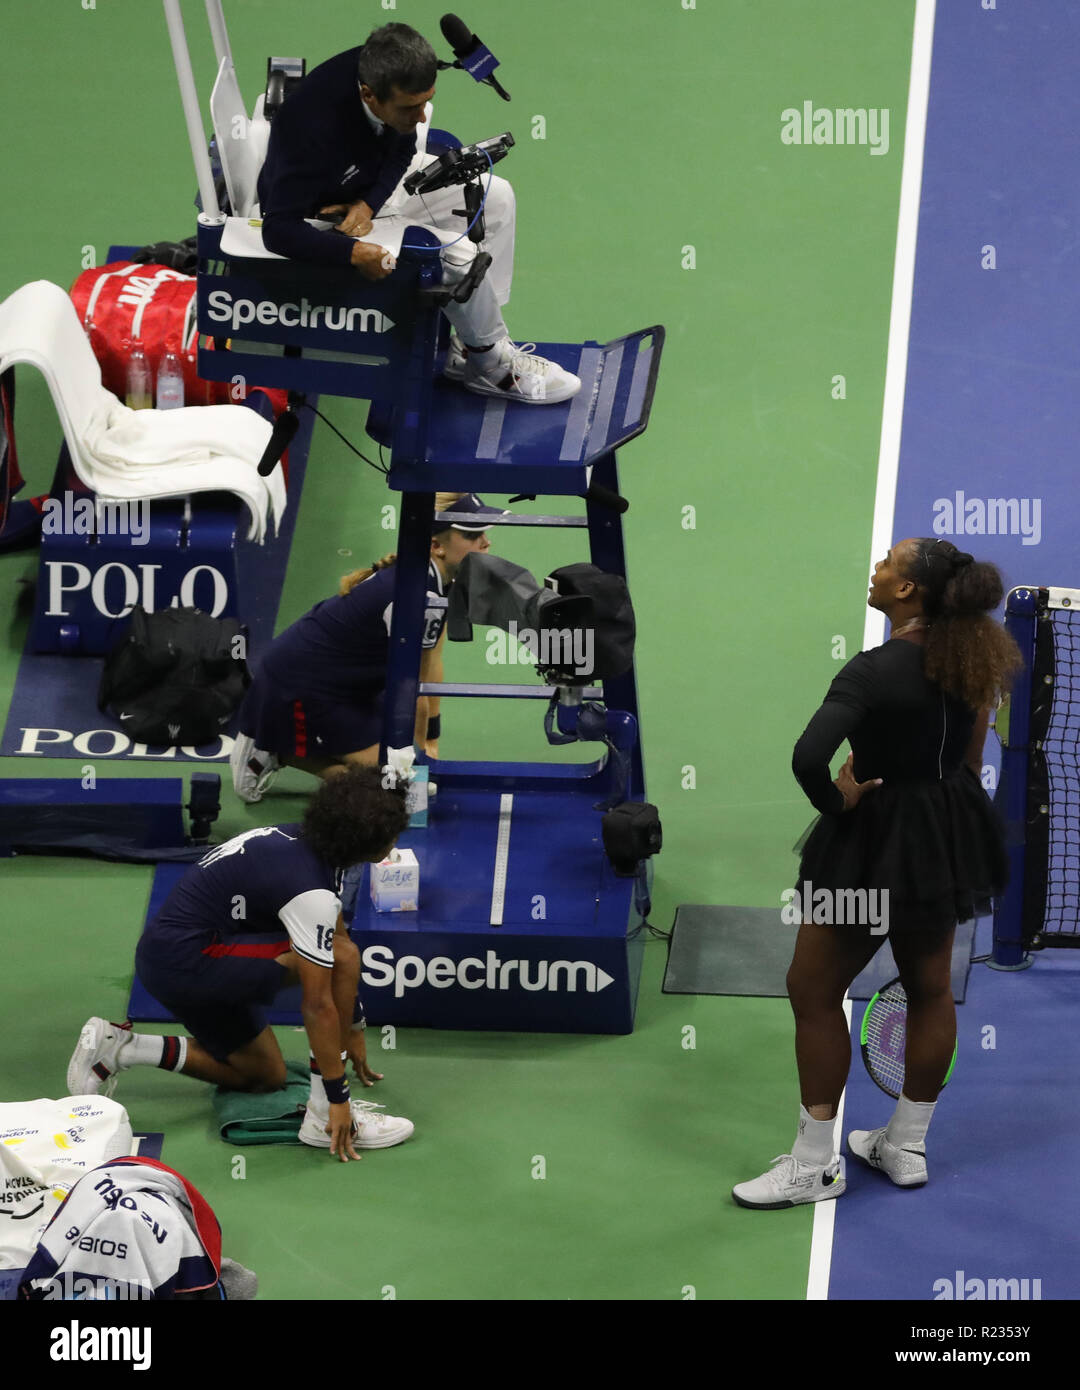 23-time Grand Slam champion Serena Williams argues with chair umpire Carlos Ramos during her 2018 US Open final match at National Tennis Center - Stock Image